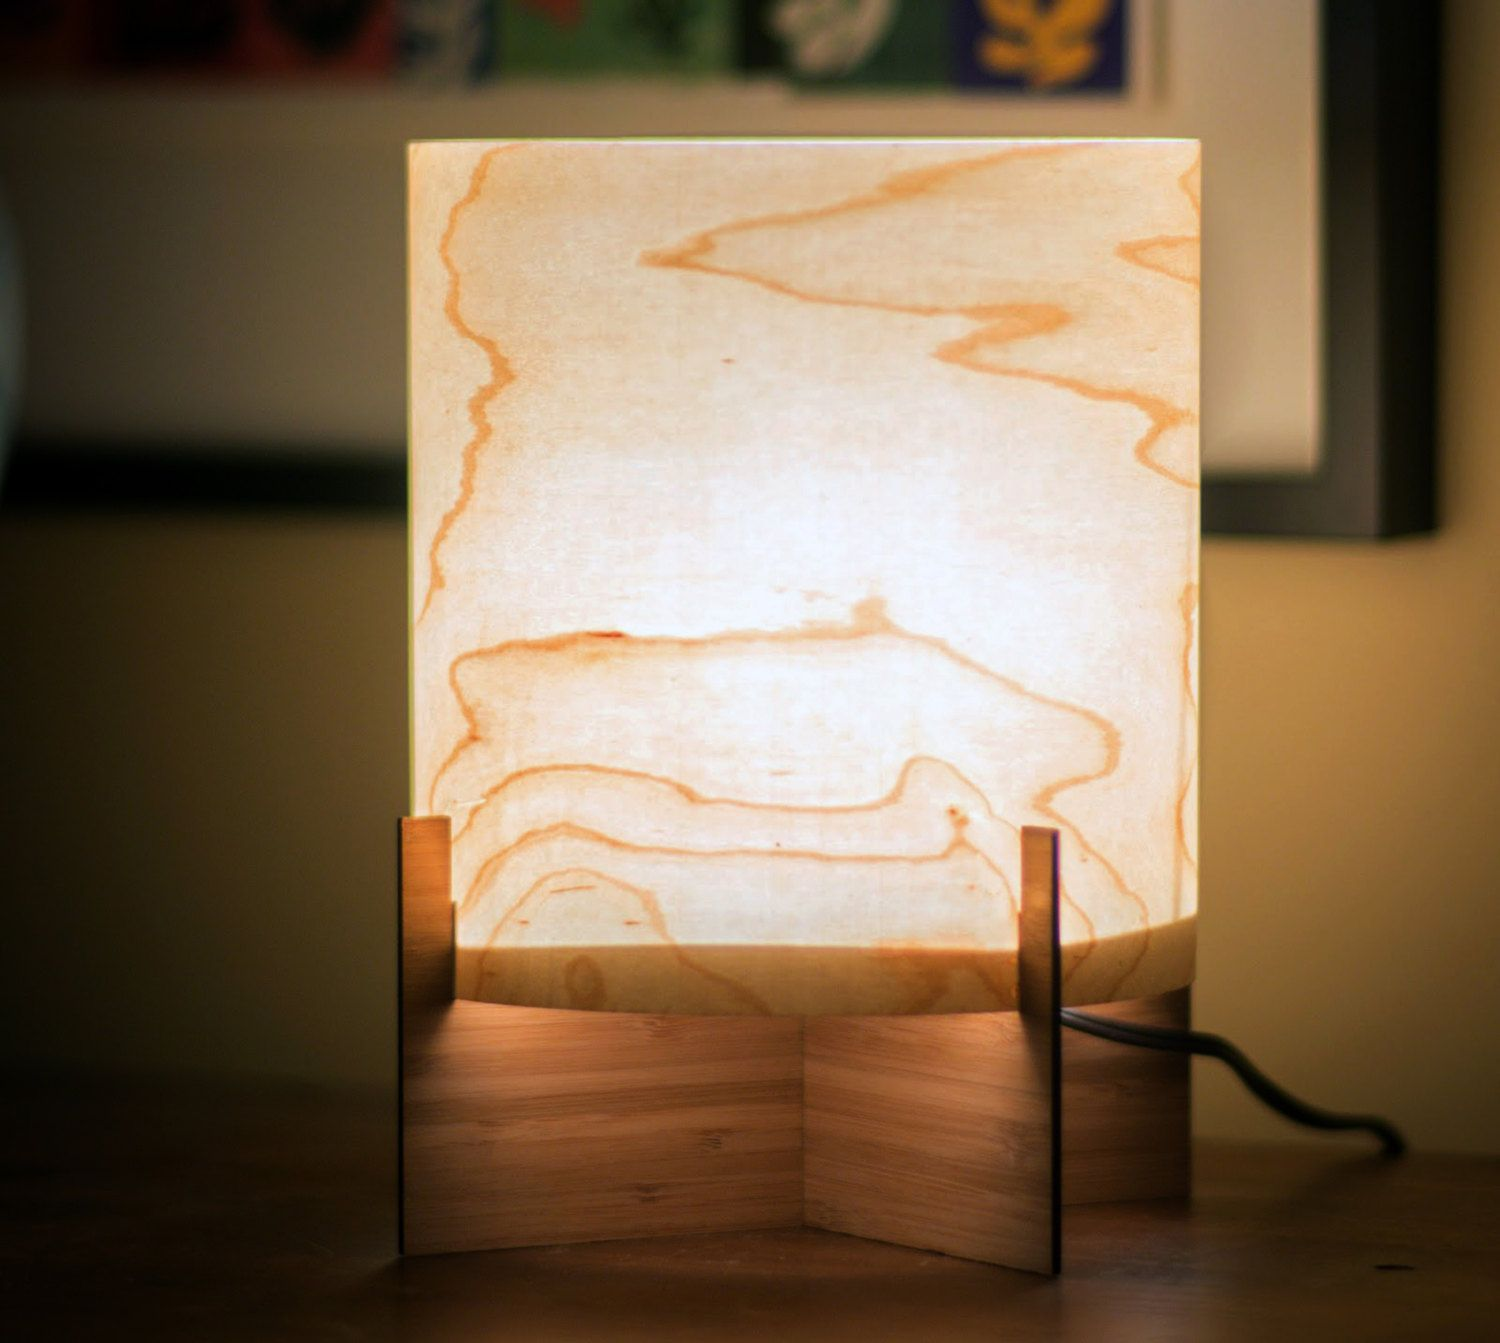 On sale real wood table lamp modern design in от portrhombus